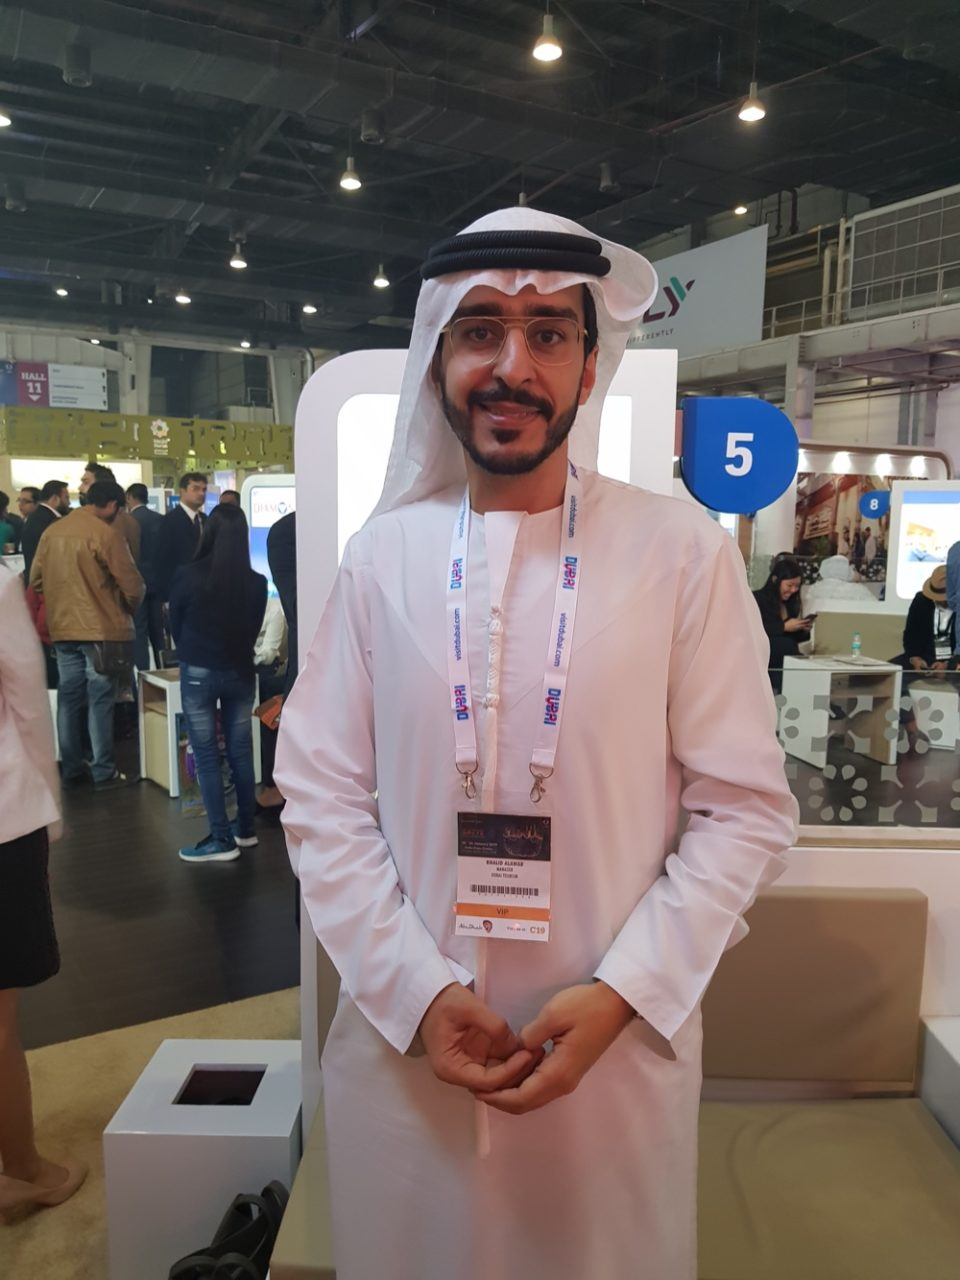 Dubai Tourism spells out plans for the Indian market in 2019